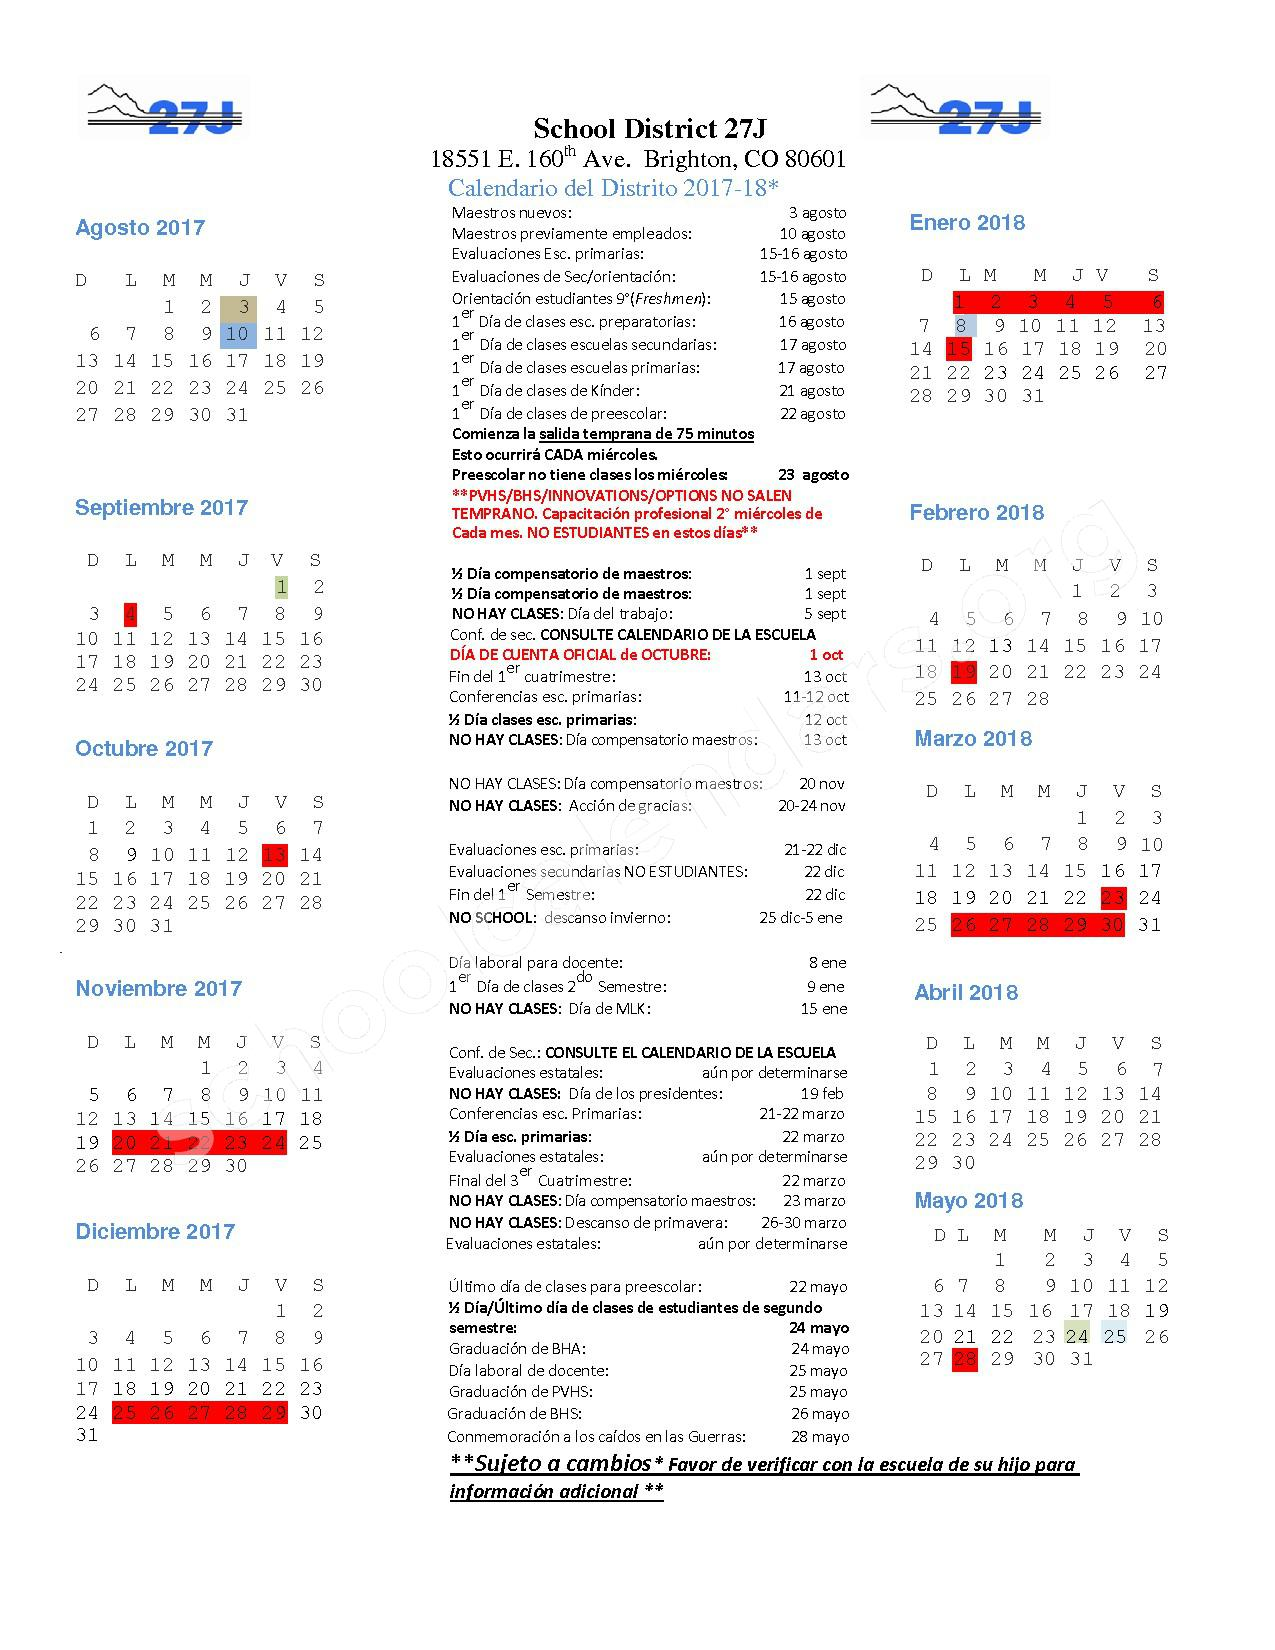 2017 - 2018 District Calendar (Espanol) – Brighton School District 27J – page 1